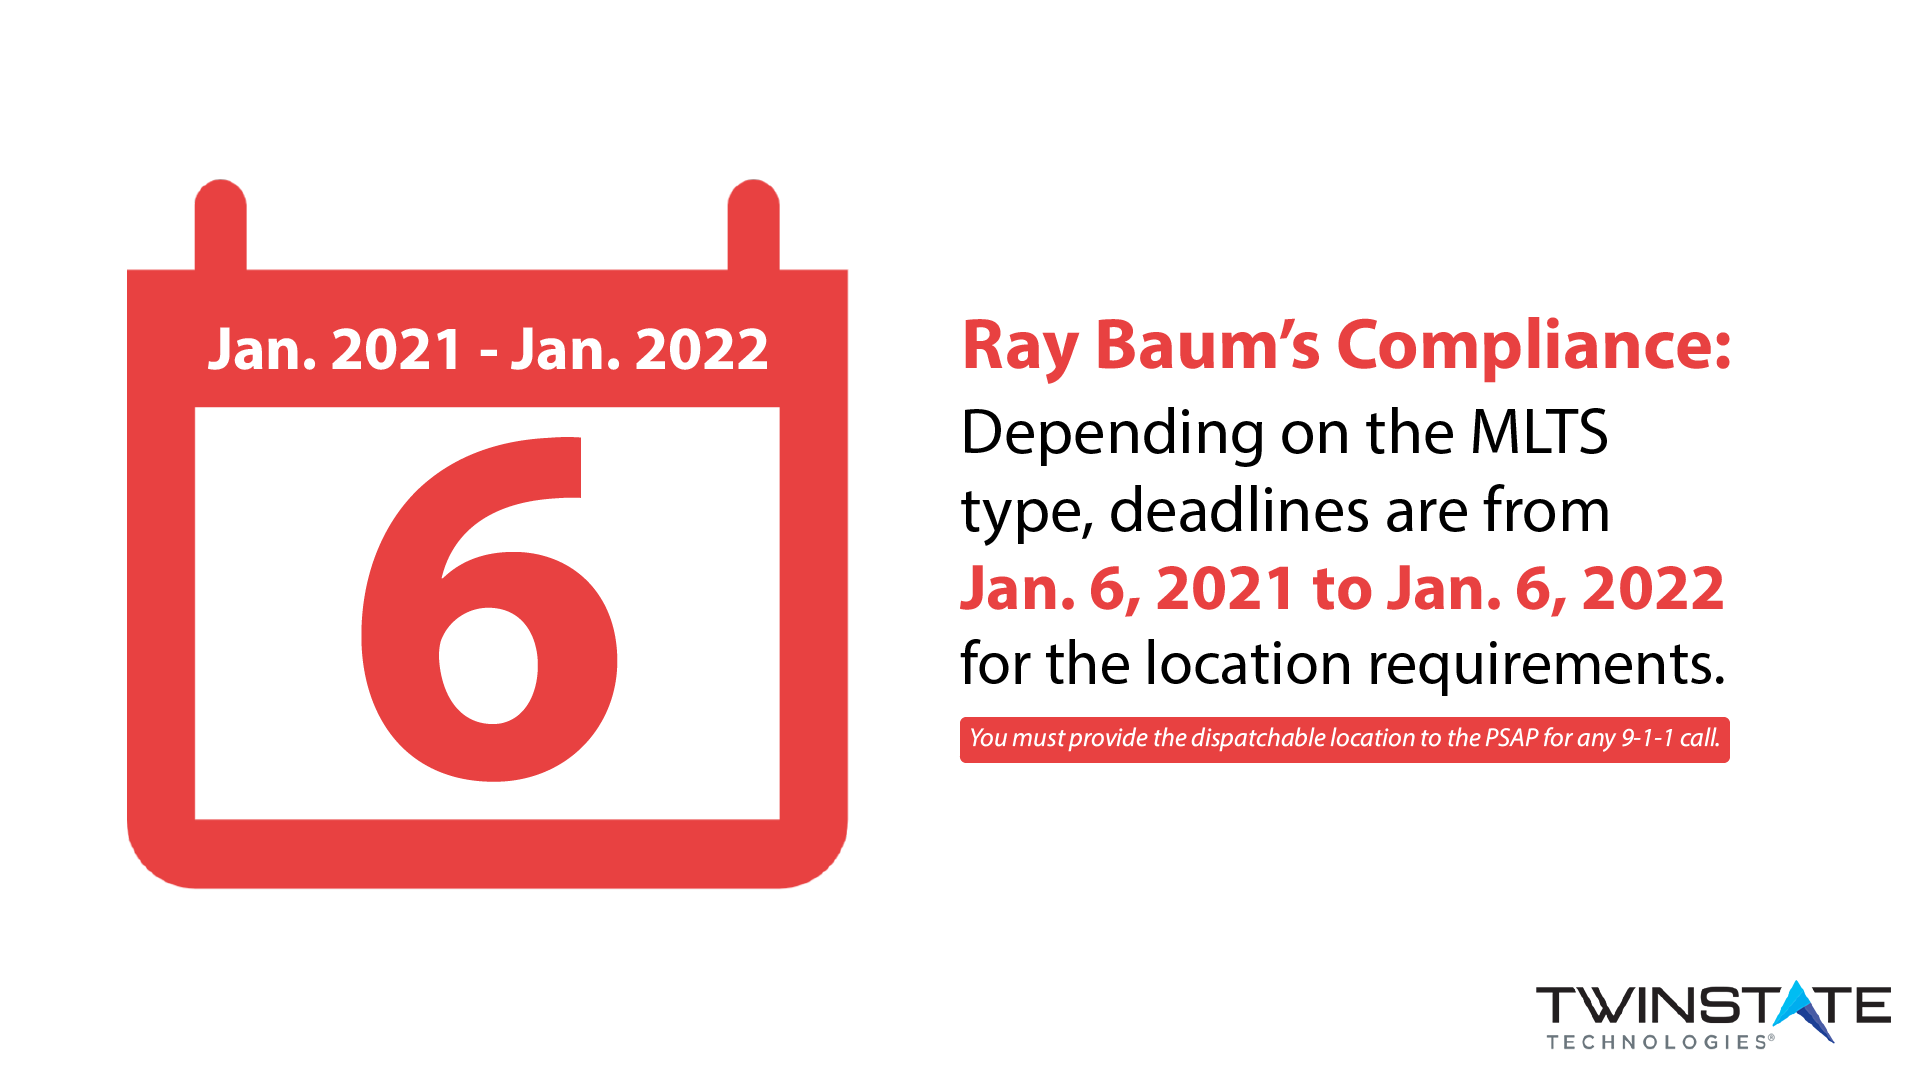 The deadline for compliance with ray baum's location requirement ranges from January 6, 2021 - January 6, 2022 depending on the type of MLTS. (red text with calendar graphic)